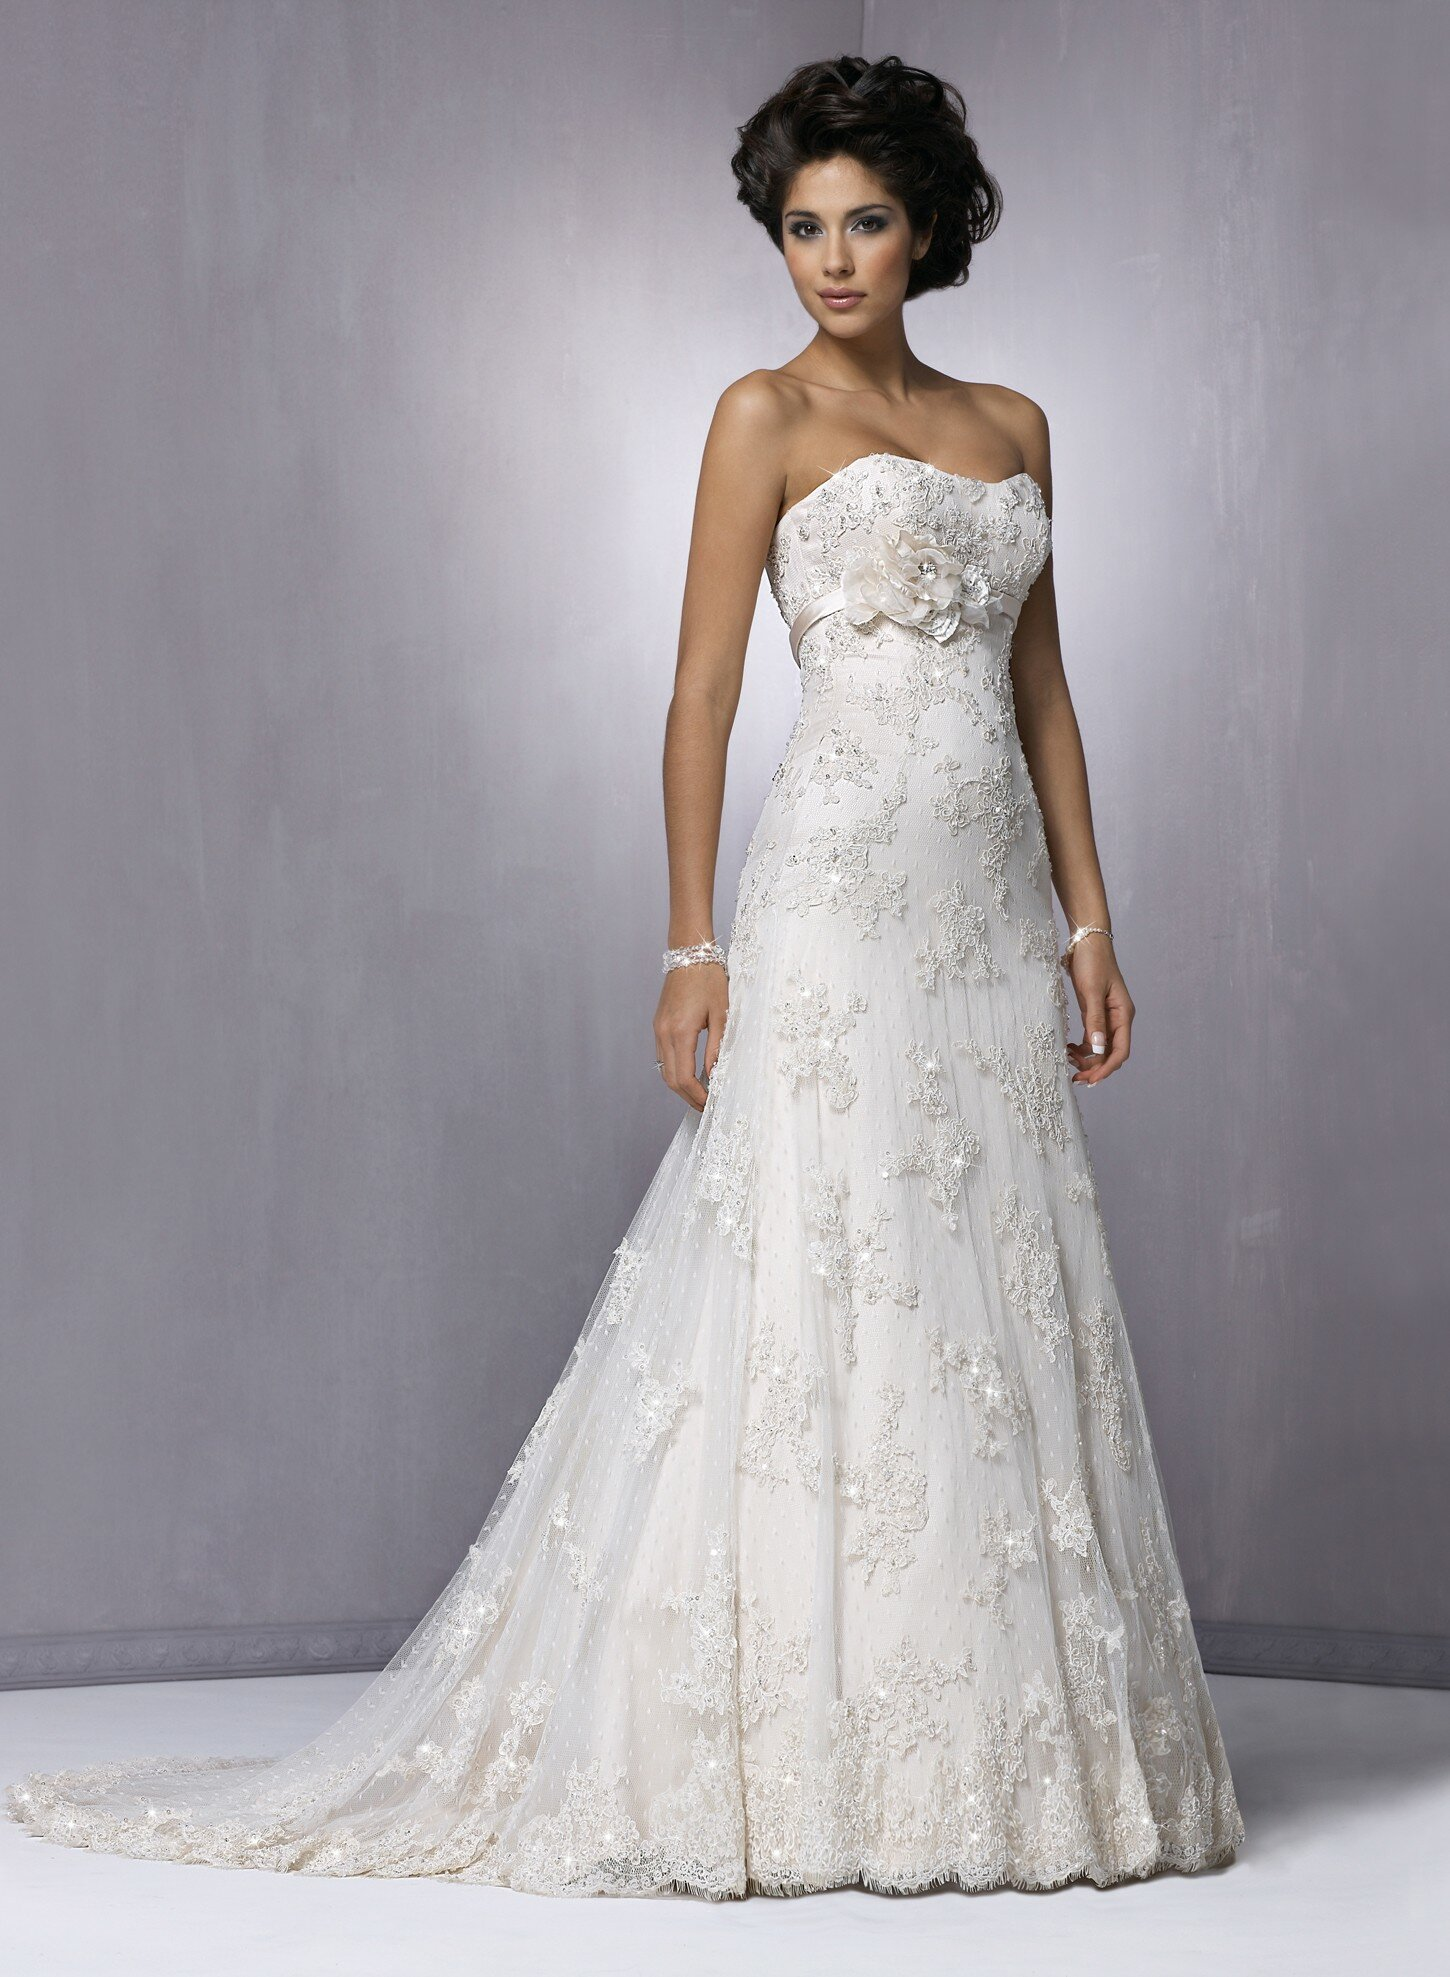 Wedding dresses with lace top Photo - 3